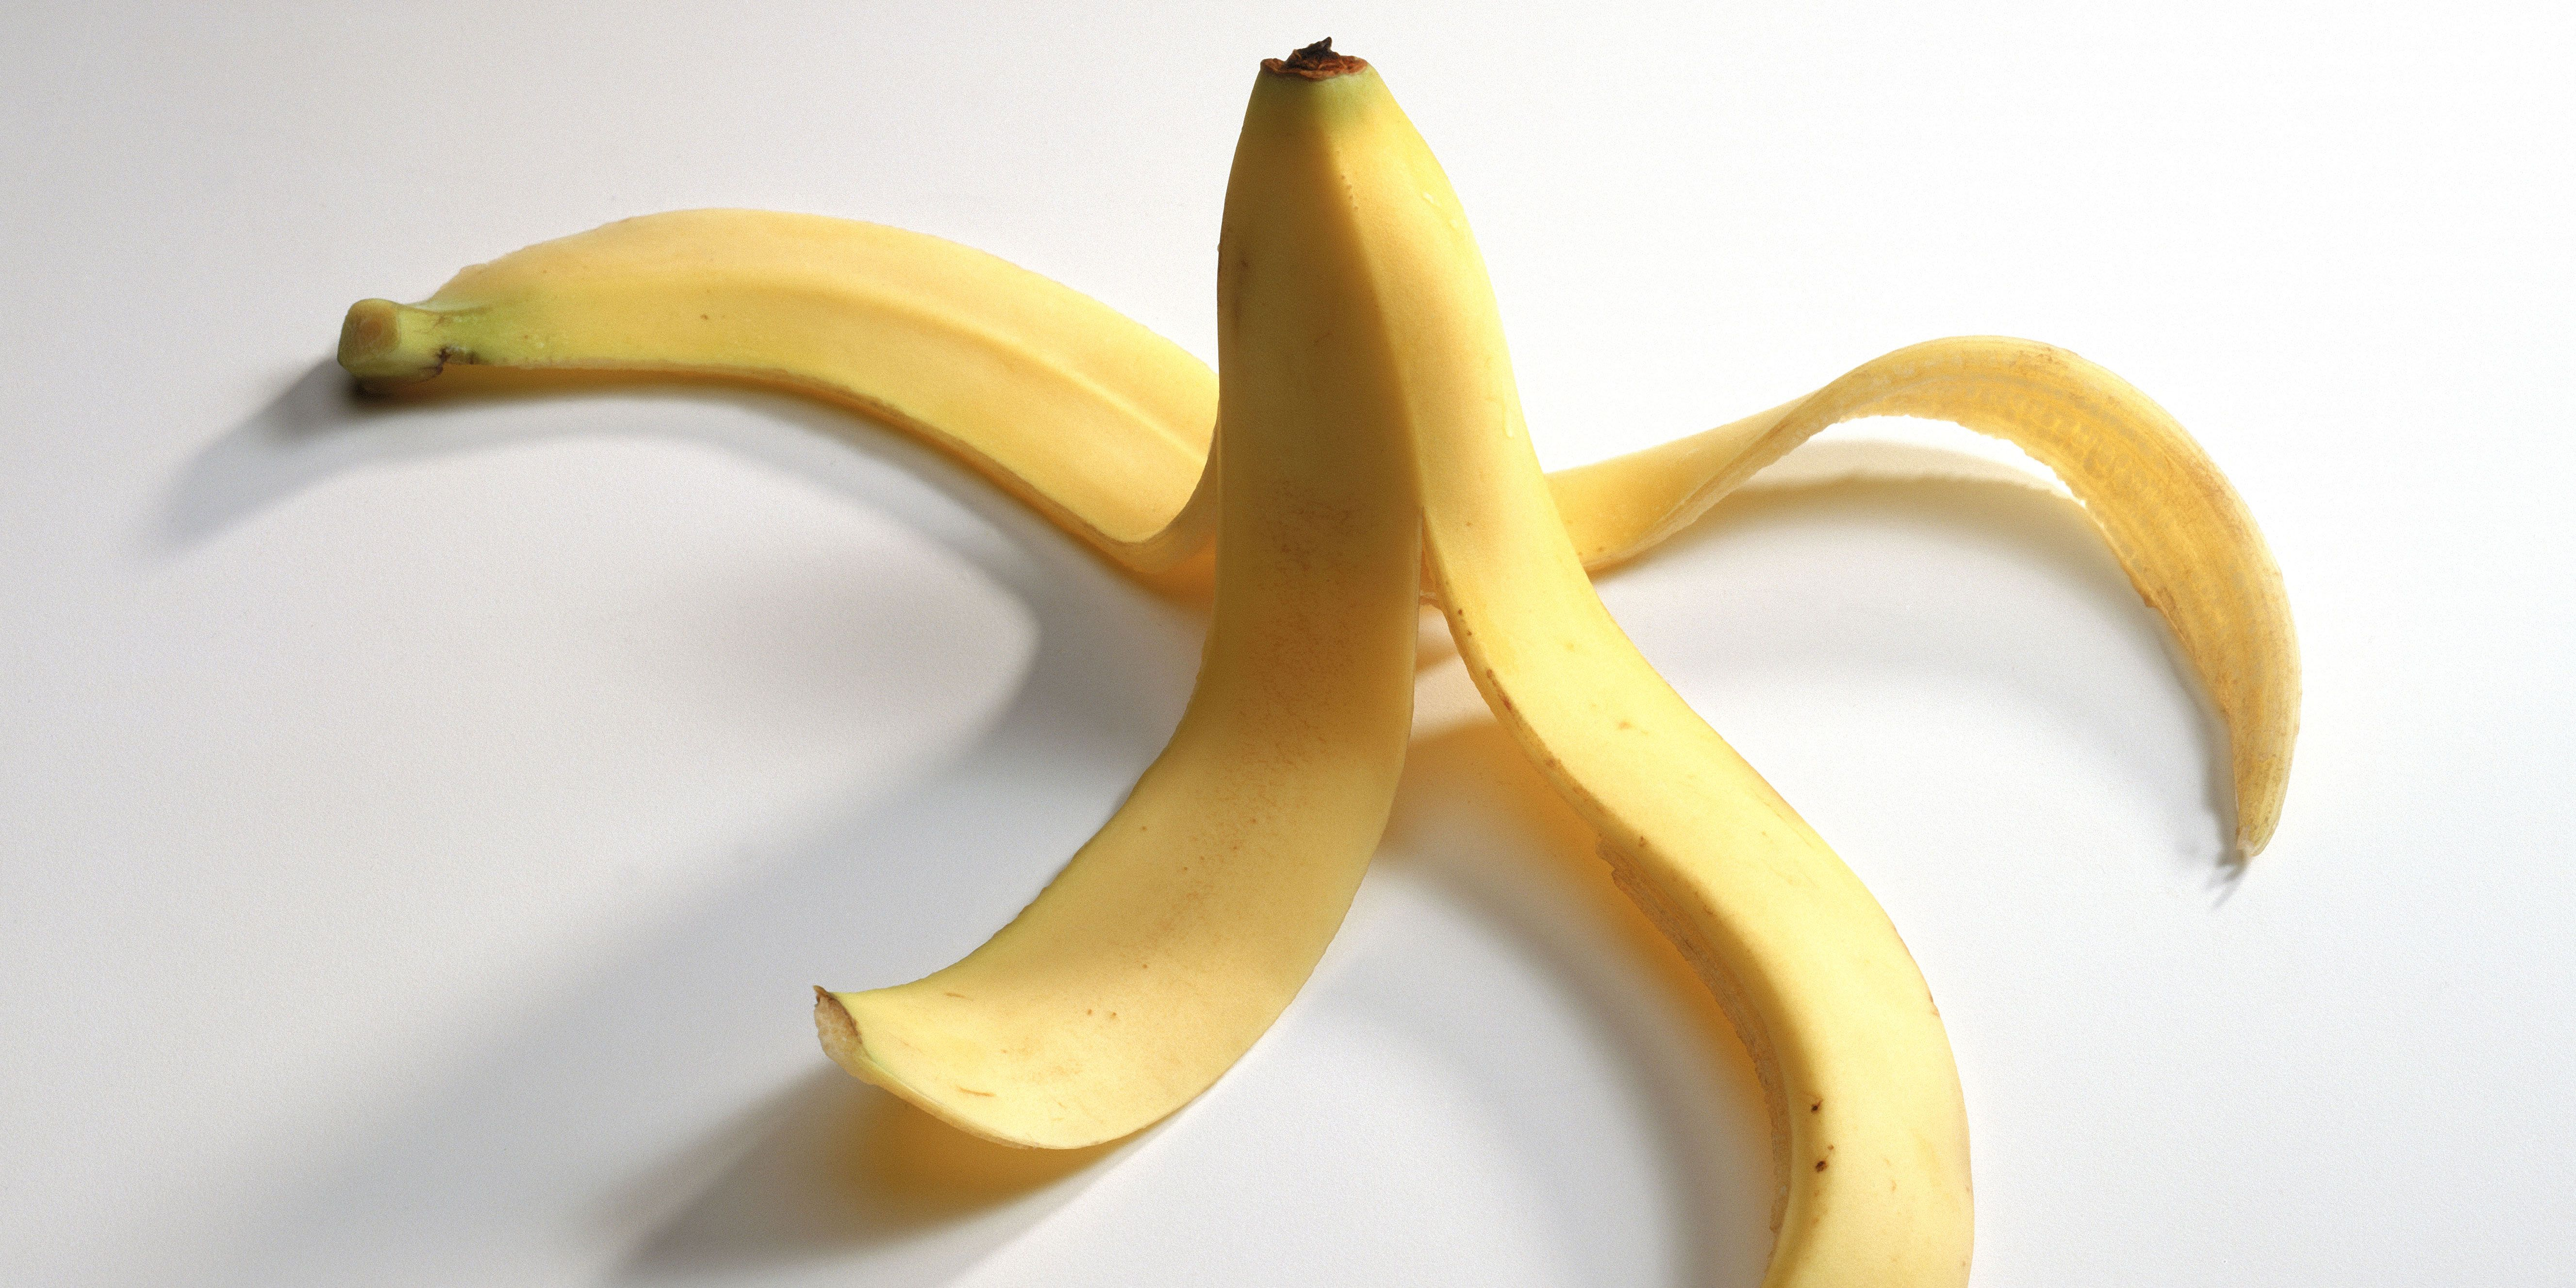 Should You Eat Banana Peel